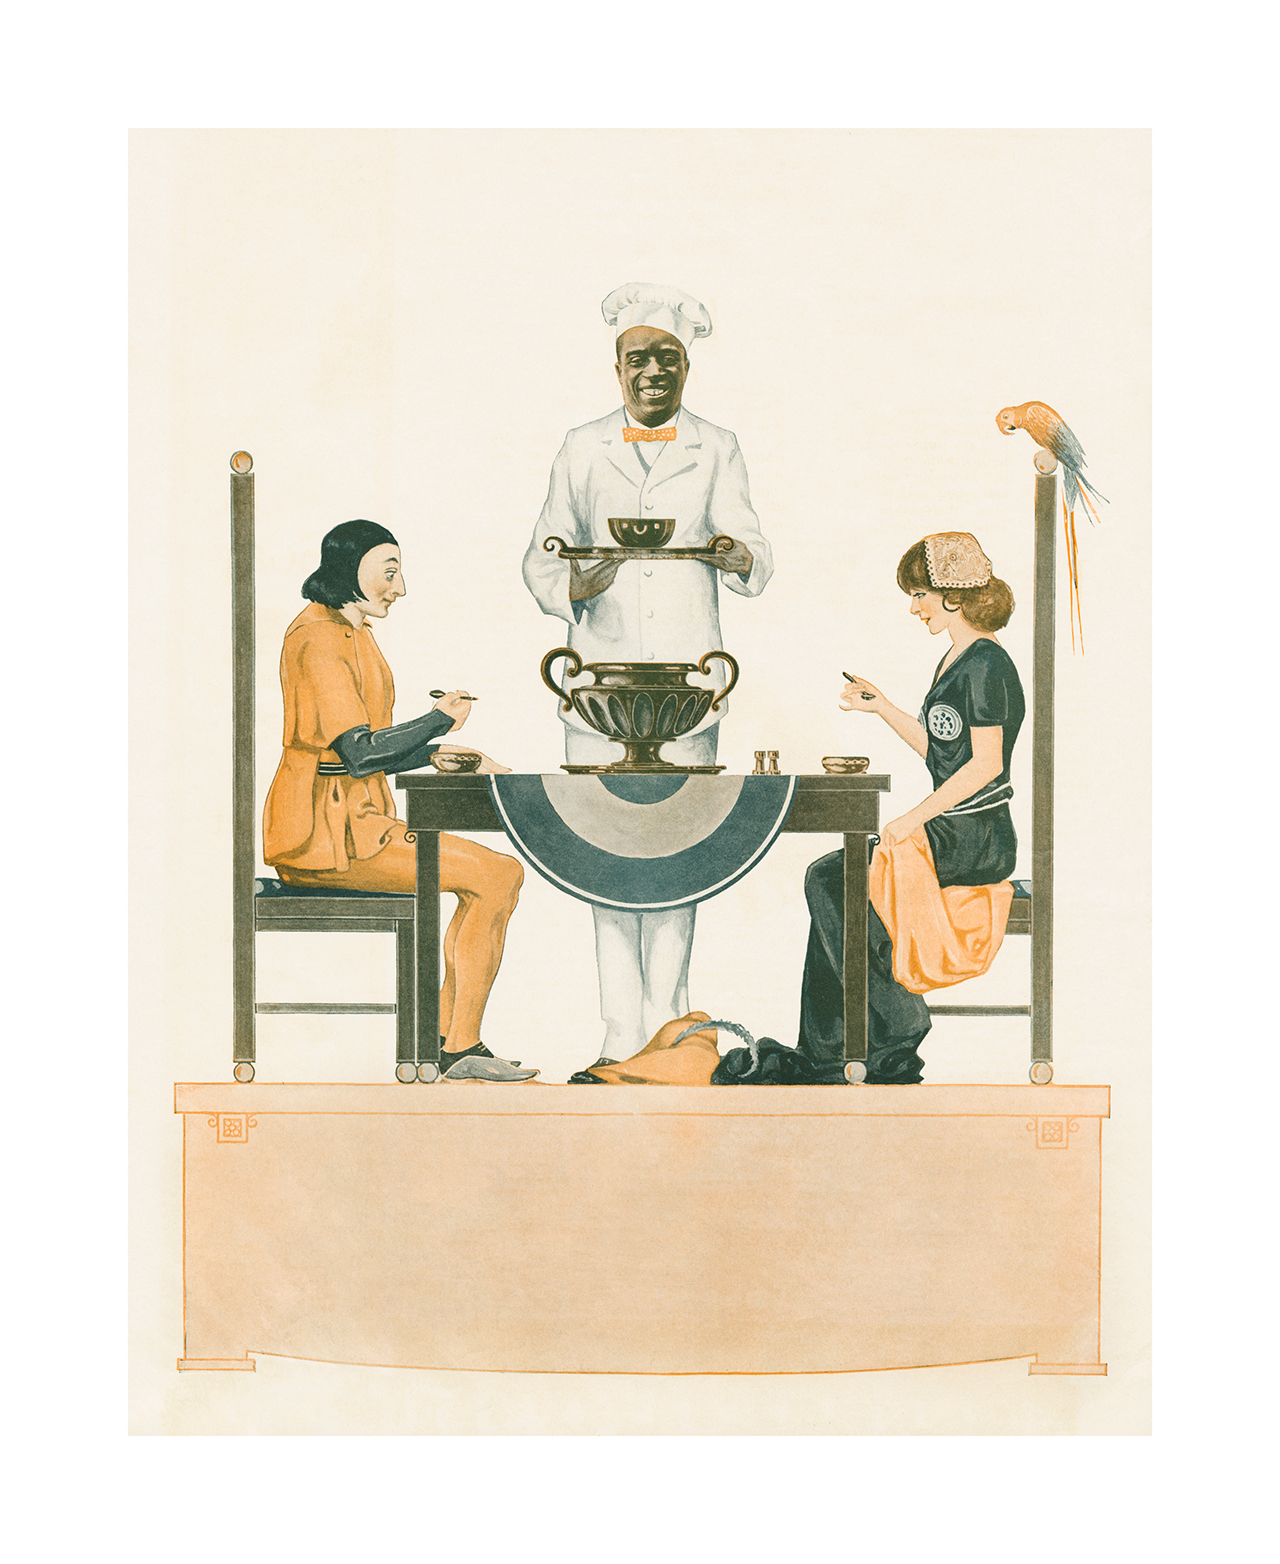 """Hank Willis Thomas, """"The Breakfast Belle, 1915/2015"""" (2015), digital chromogenic print,  48 7/8 x 40 in (paper size), 50 x 41 x 1 3/4 in (framed) (image courtesy the artist and Jack Shainman Gallery, New York) (click to enlarge)"""